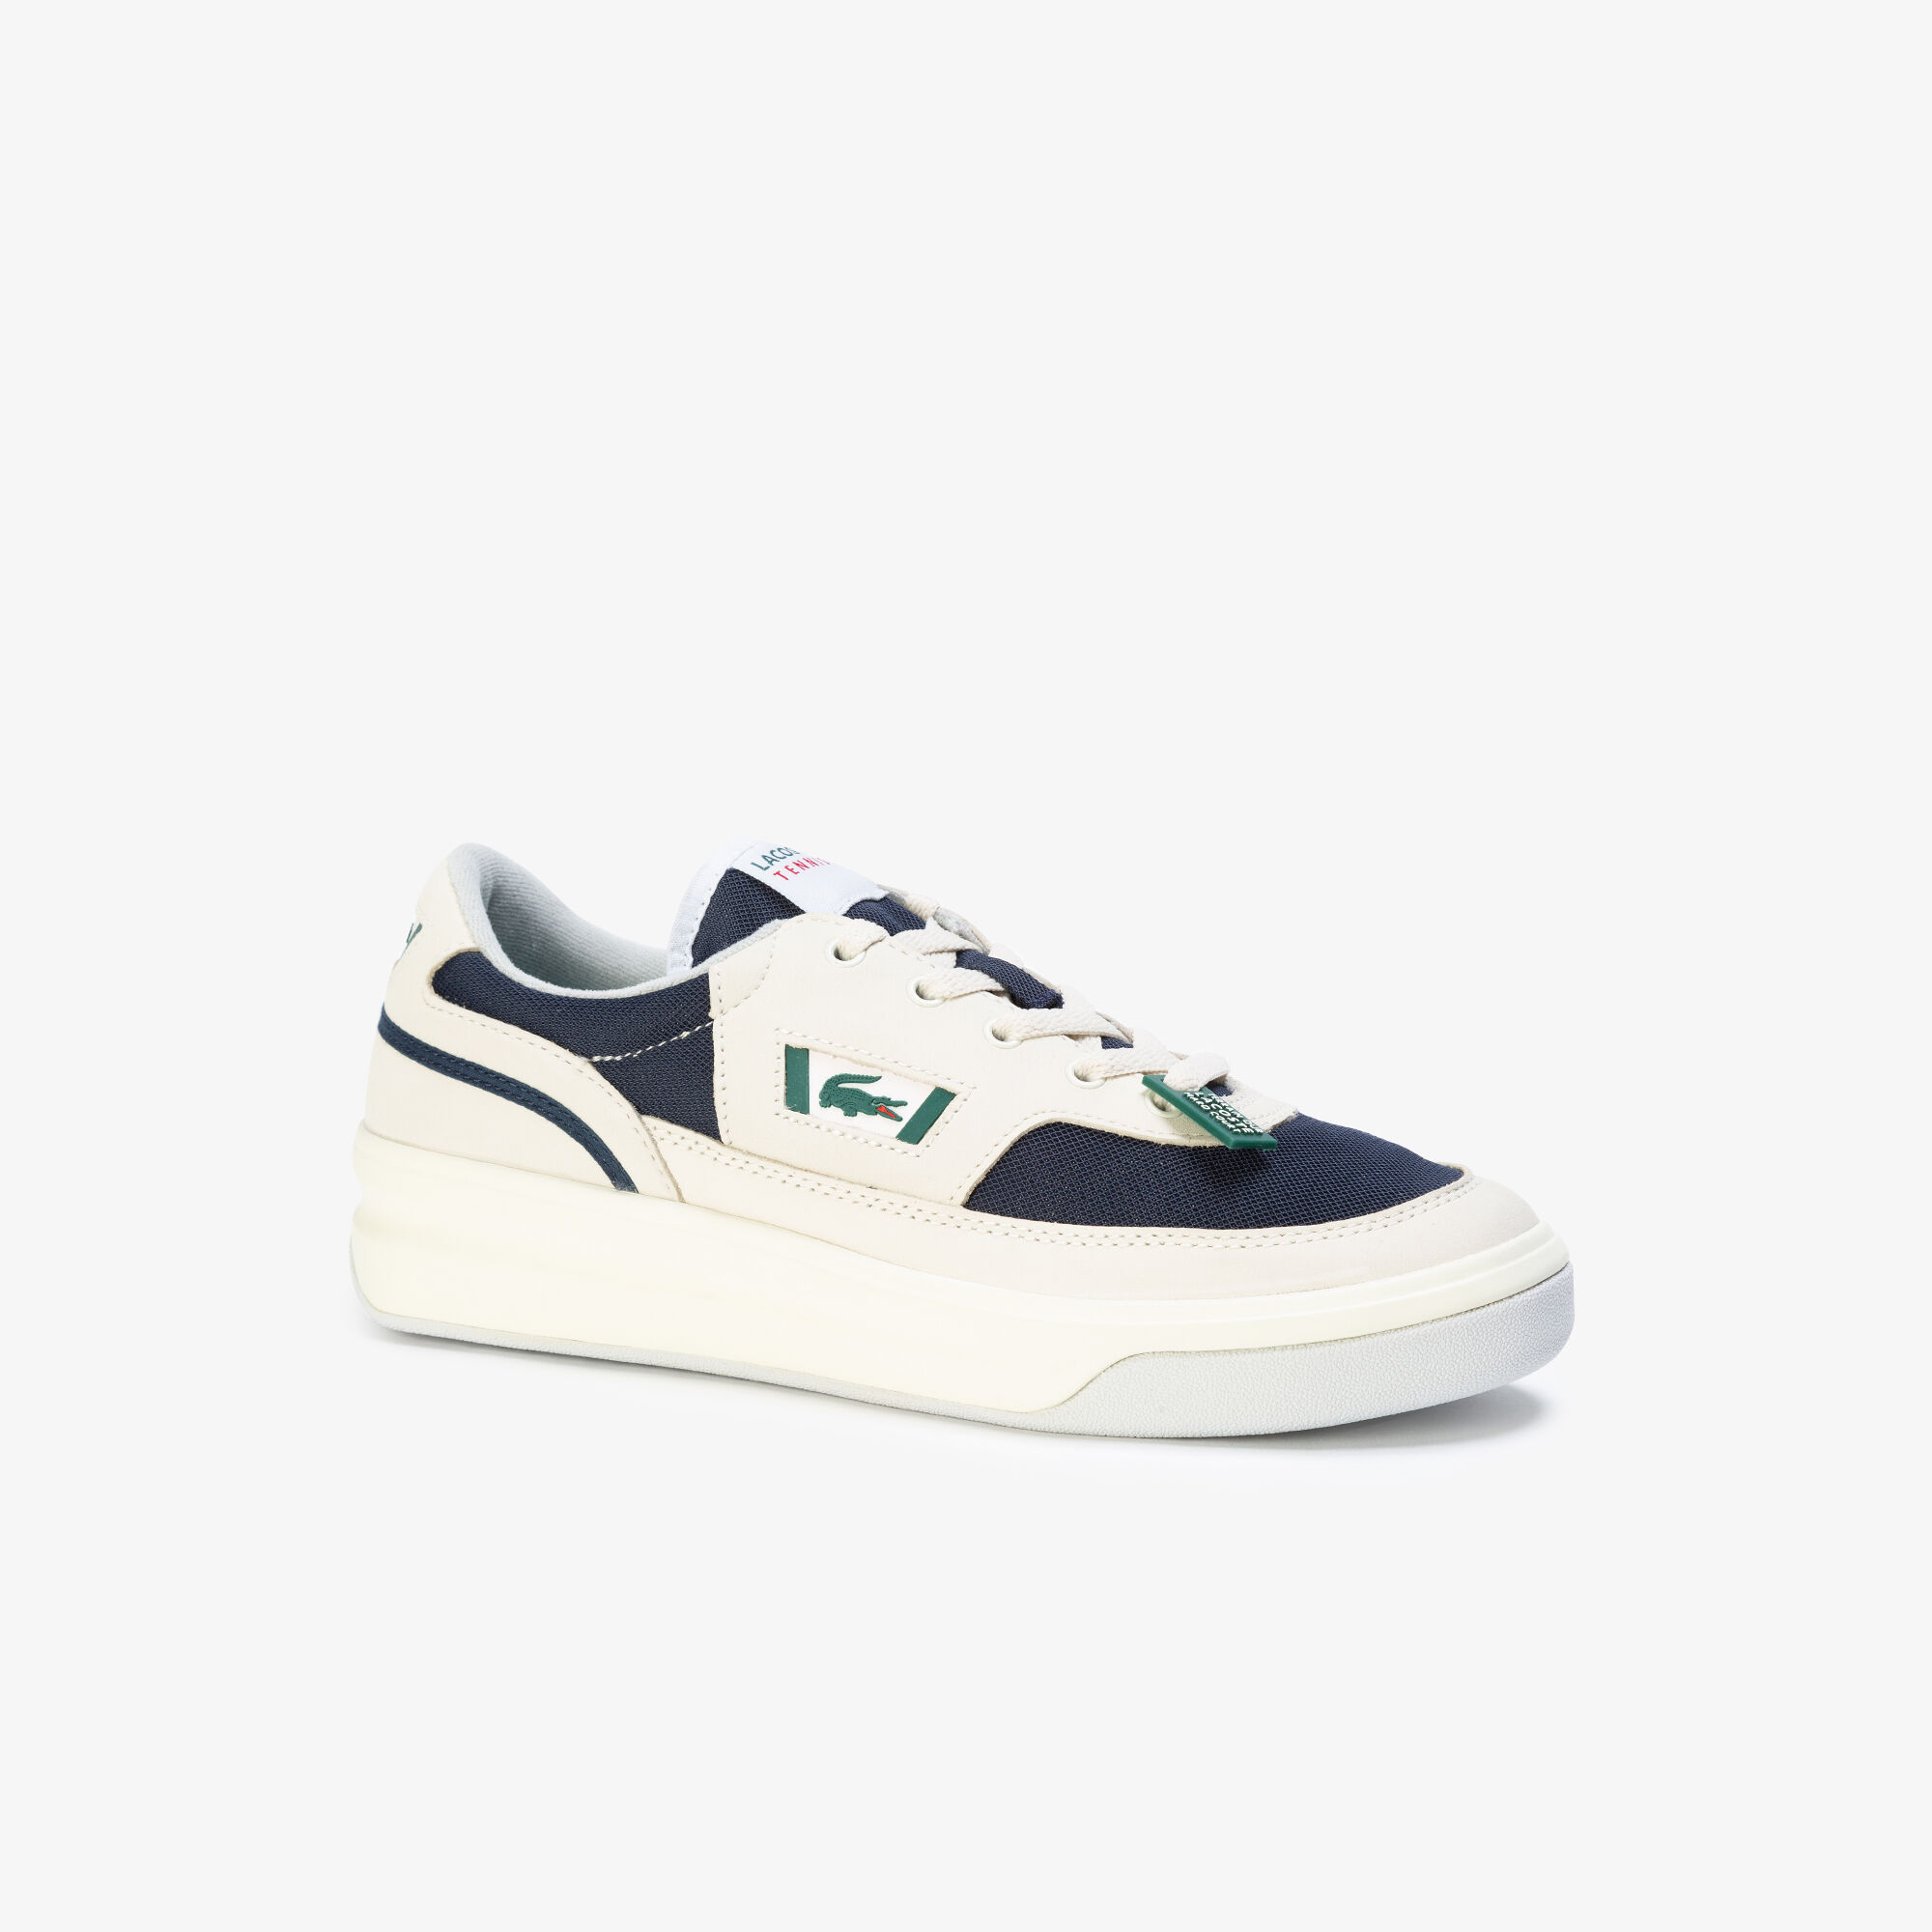 Men's G80 OG Leather and Textile Trainers